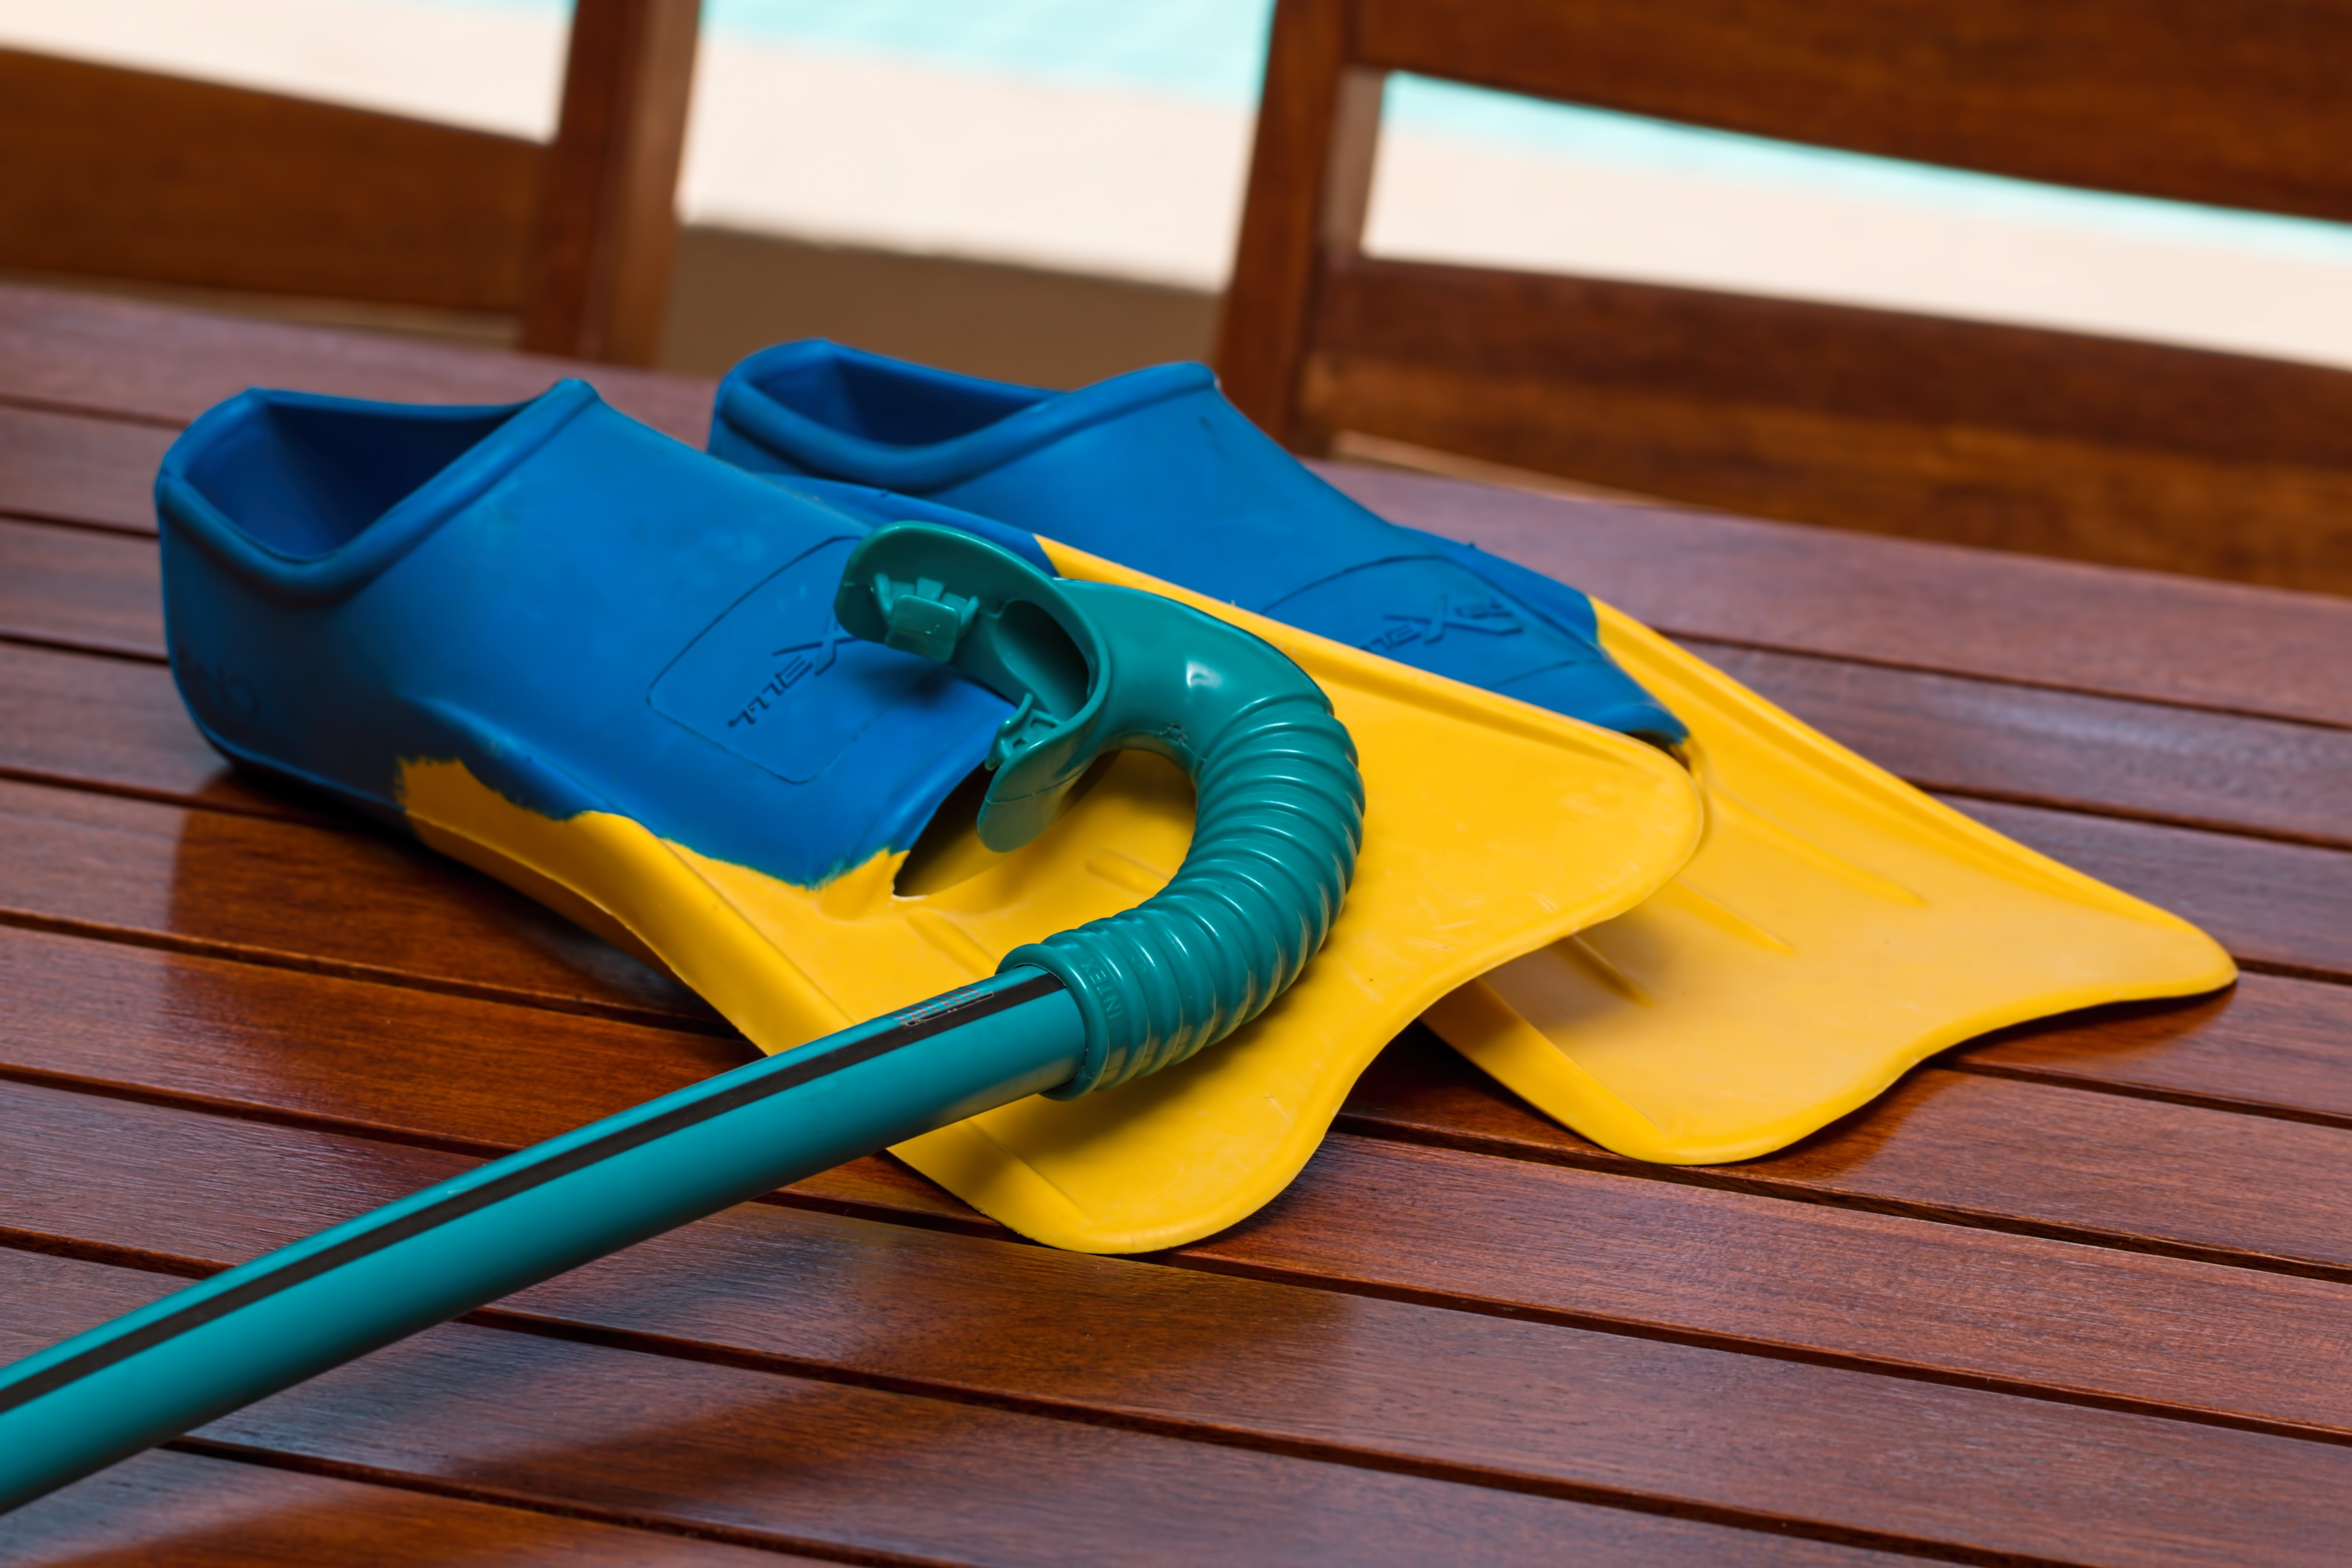 Blue and Yellow Flippers, Wood, Wooden, Snorkel, Plastic, HQ Photo